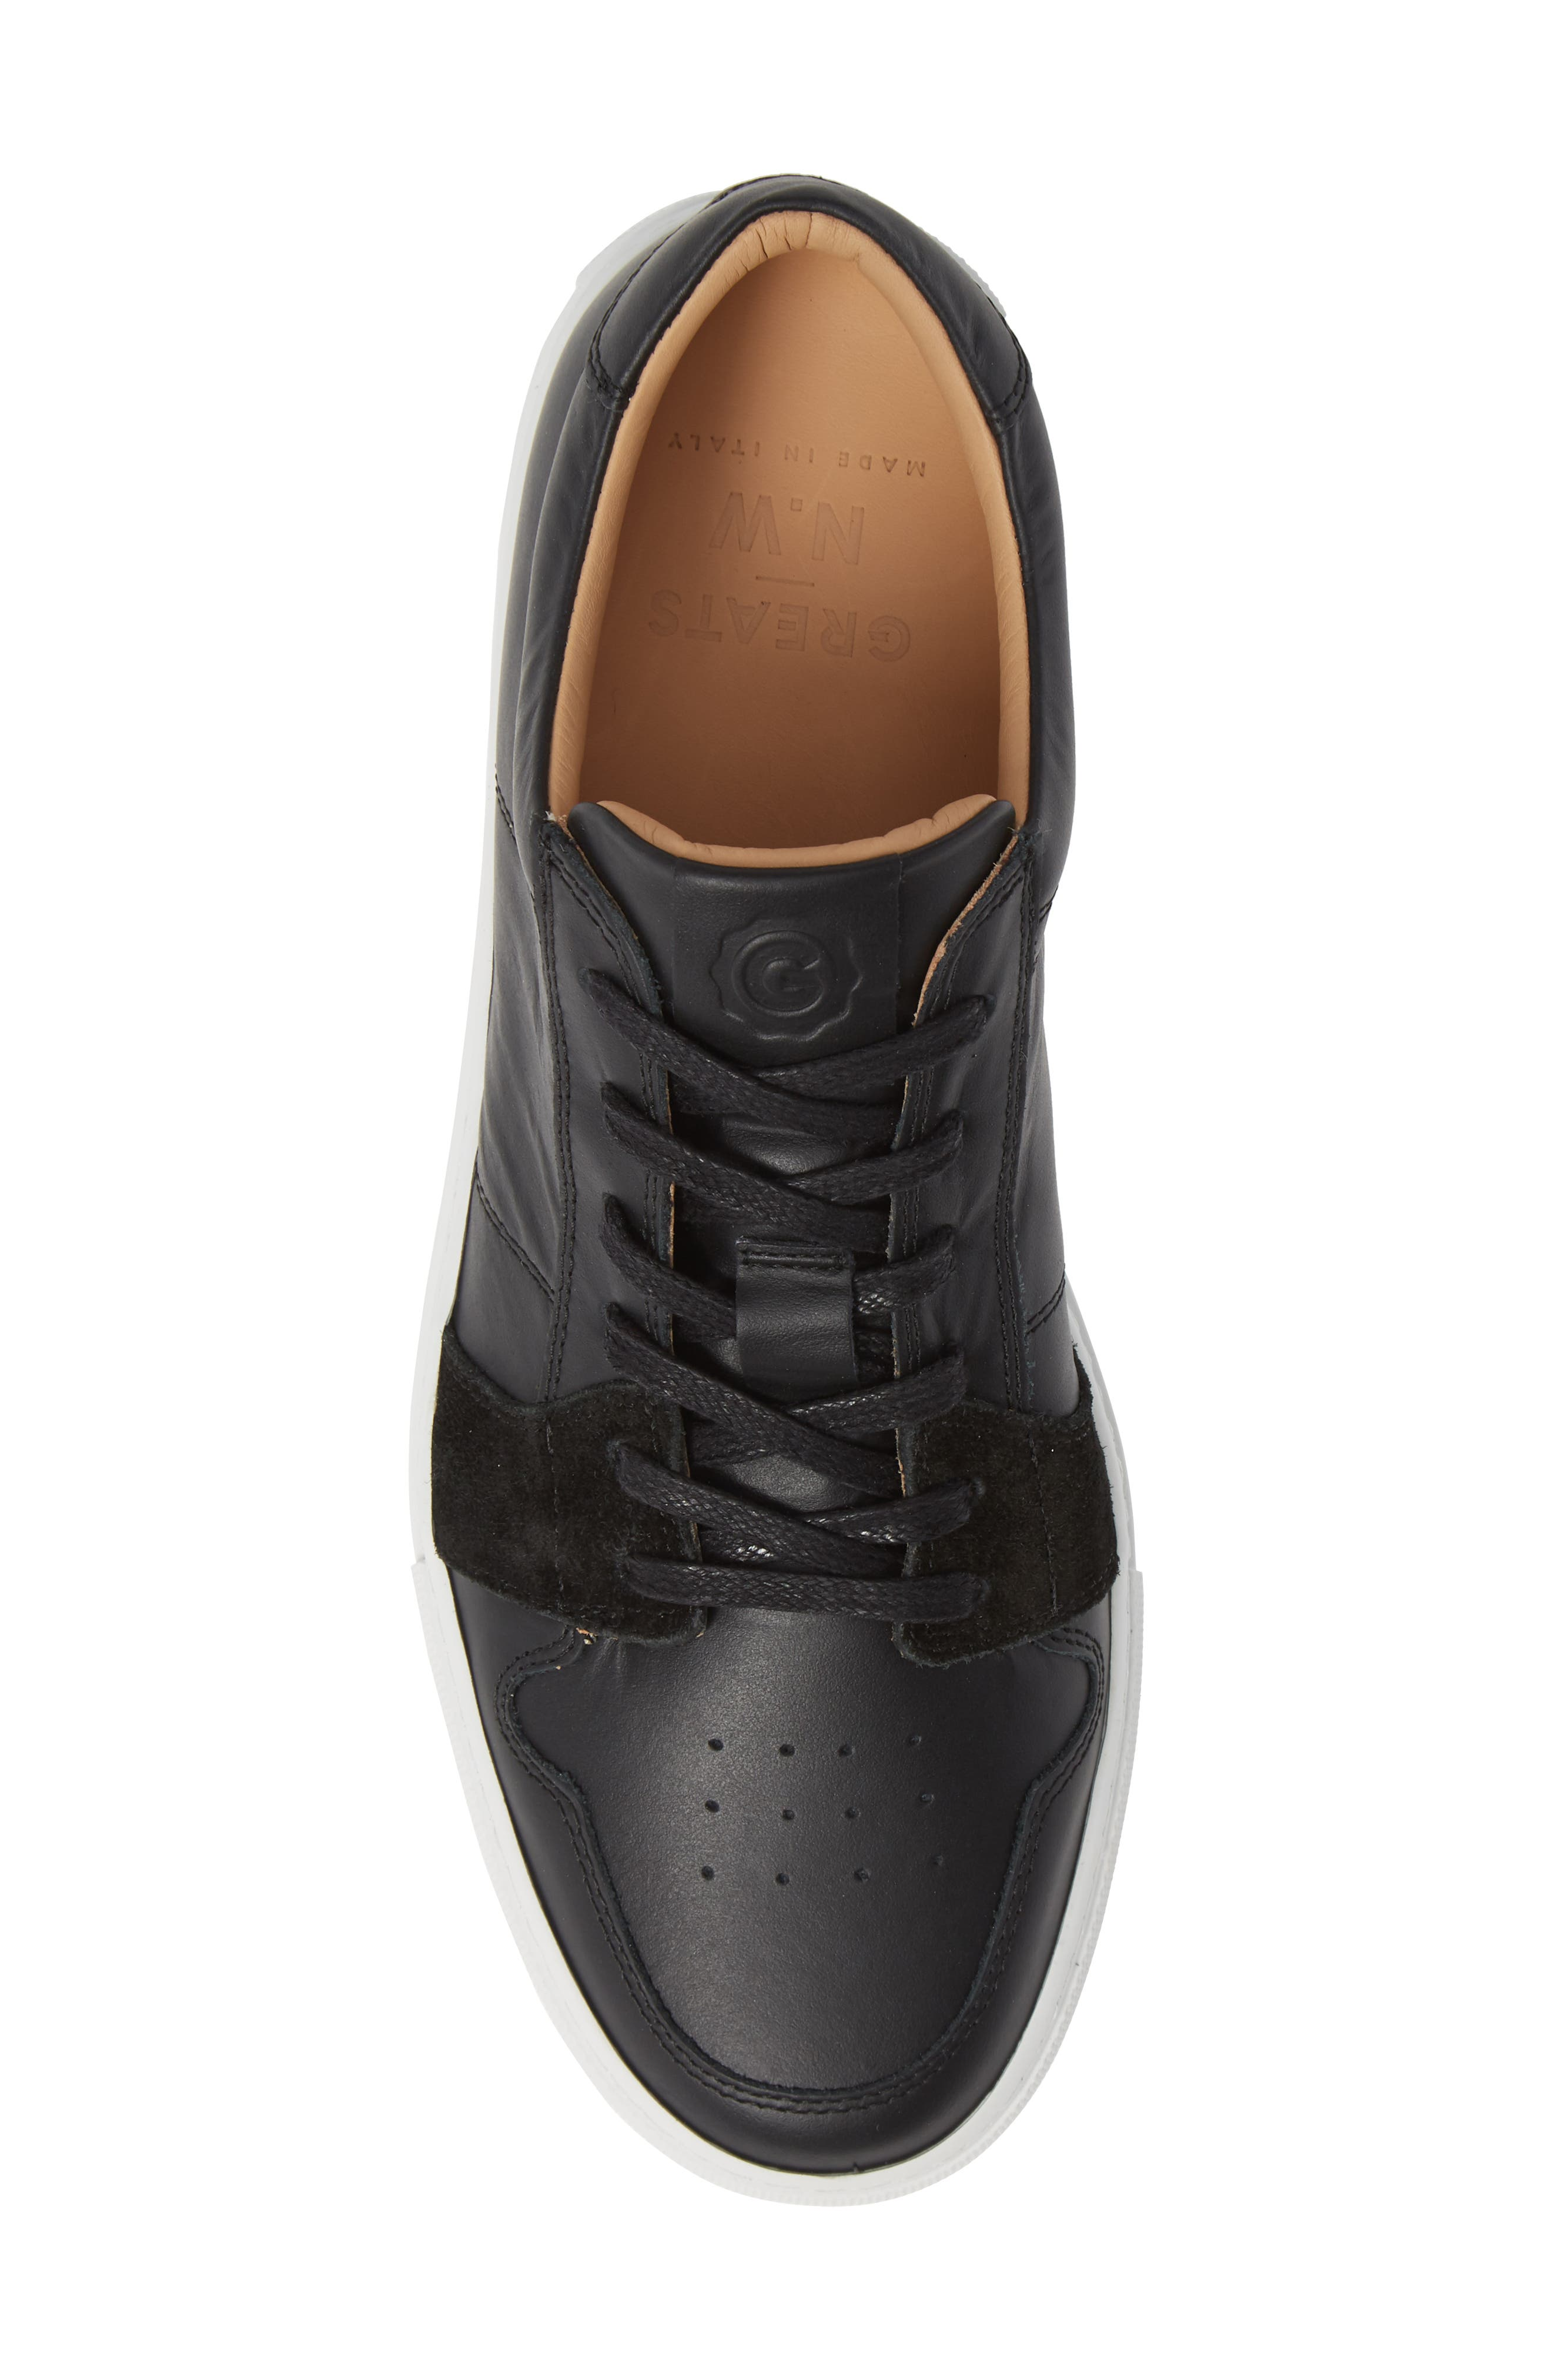 Nick Wooster x GREATS Court Low Top Sneaker,                             Alternate thumbnail 5, color,                             BLACK